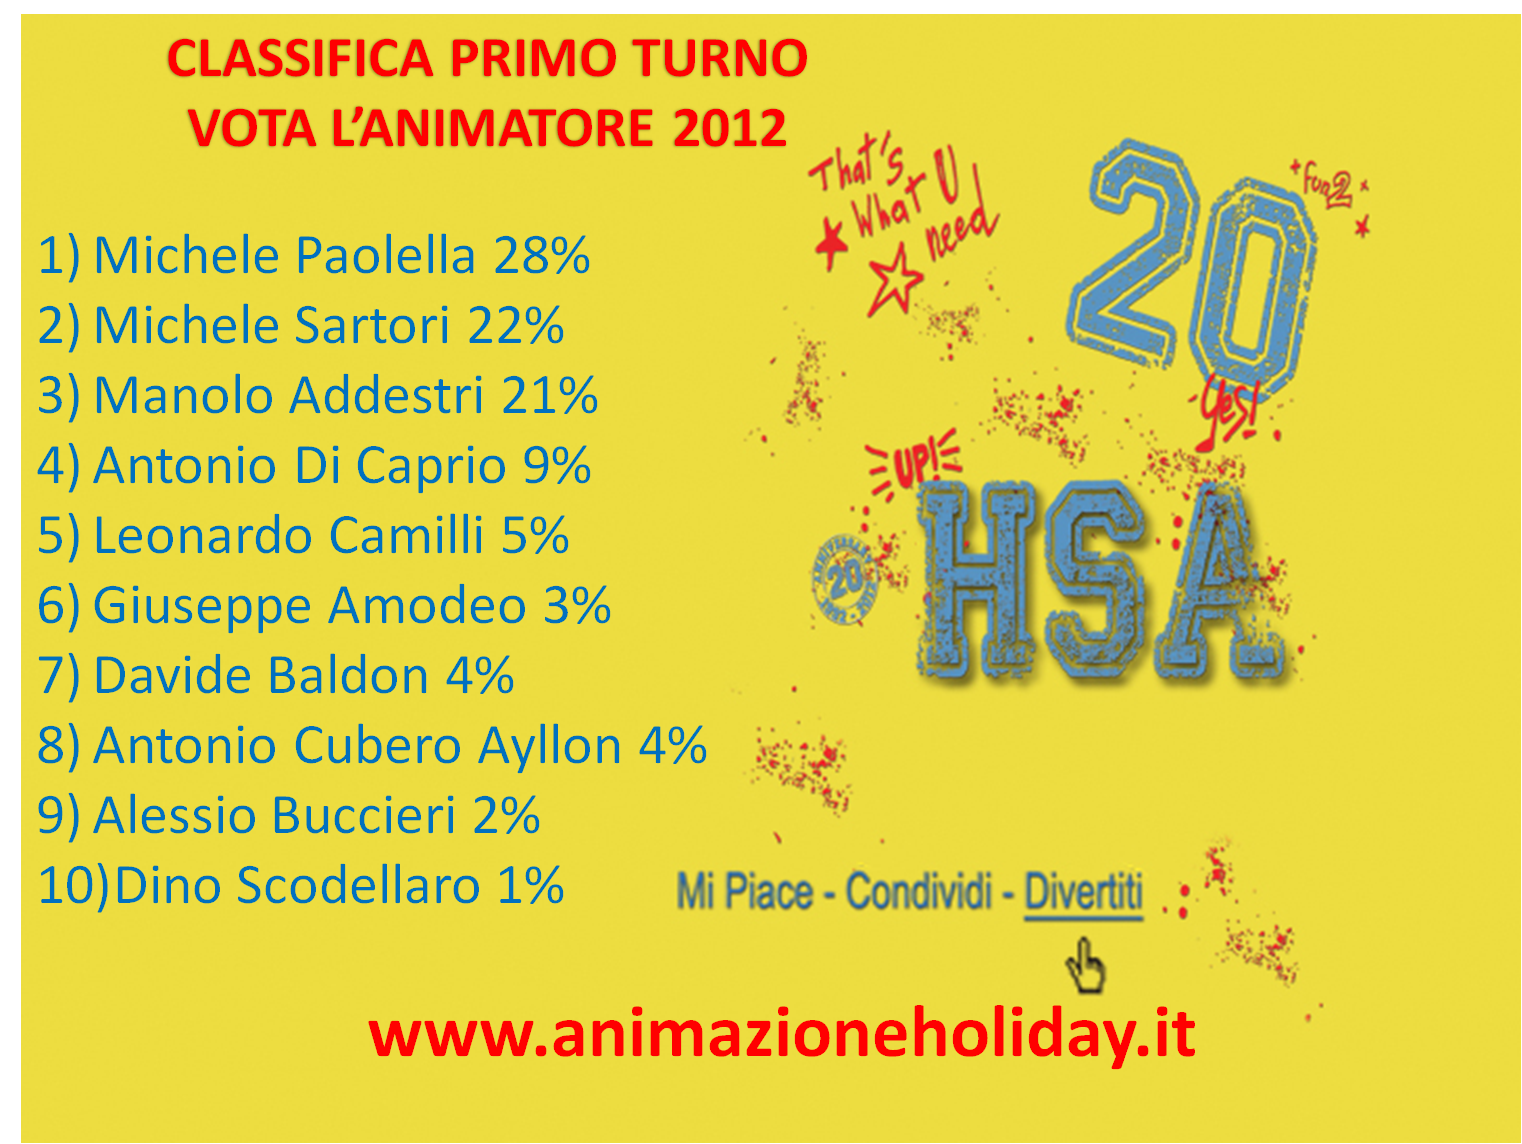 Classifica Primo Turno Vota L'animatore 2012